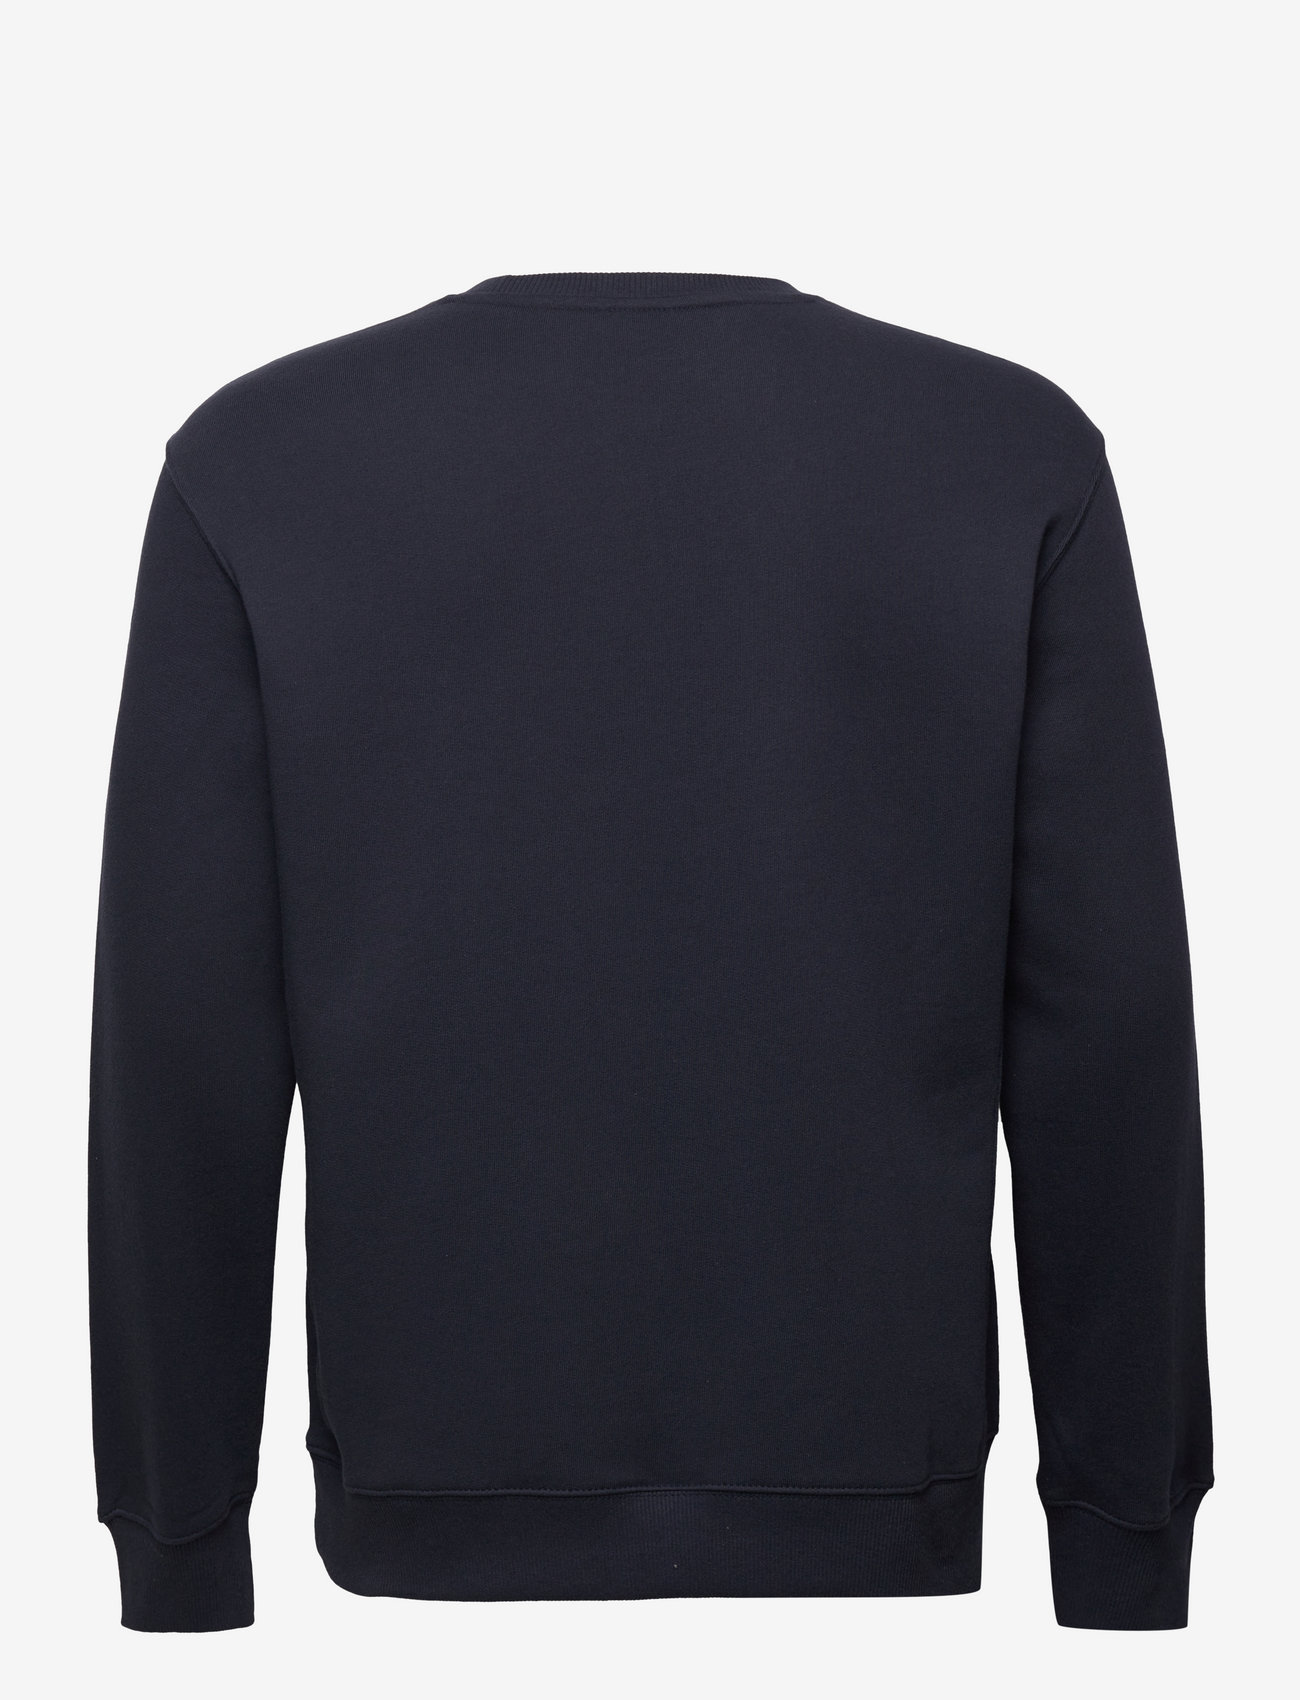 Lee Jeans PLAIN CREW SWS - Sweatshirts MIDNIGHT NAVY - Menn Klær